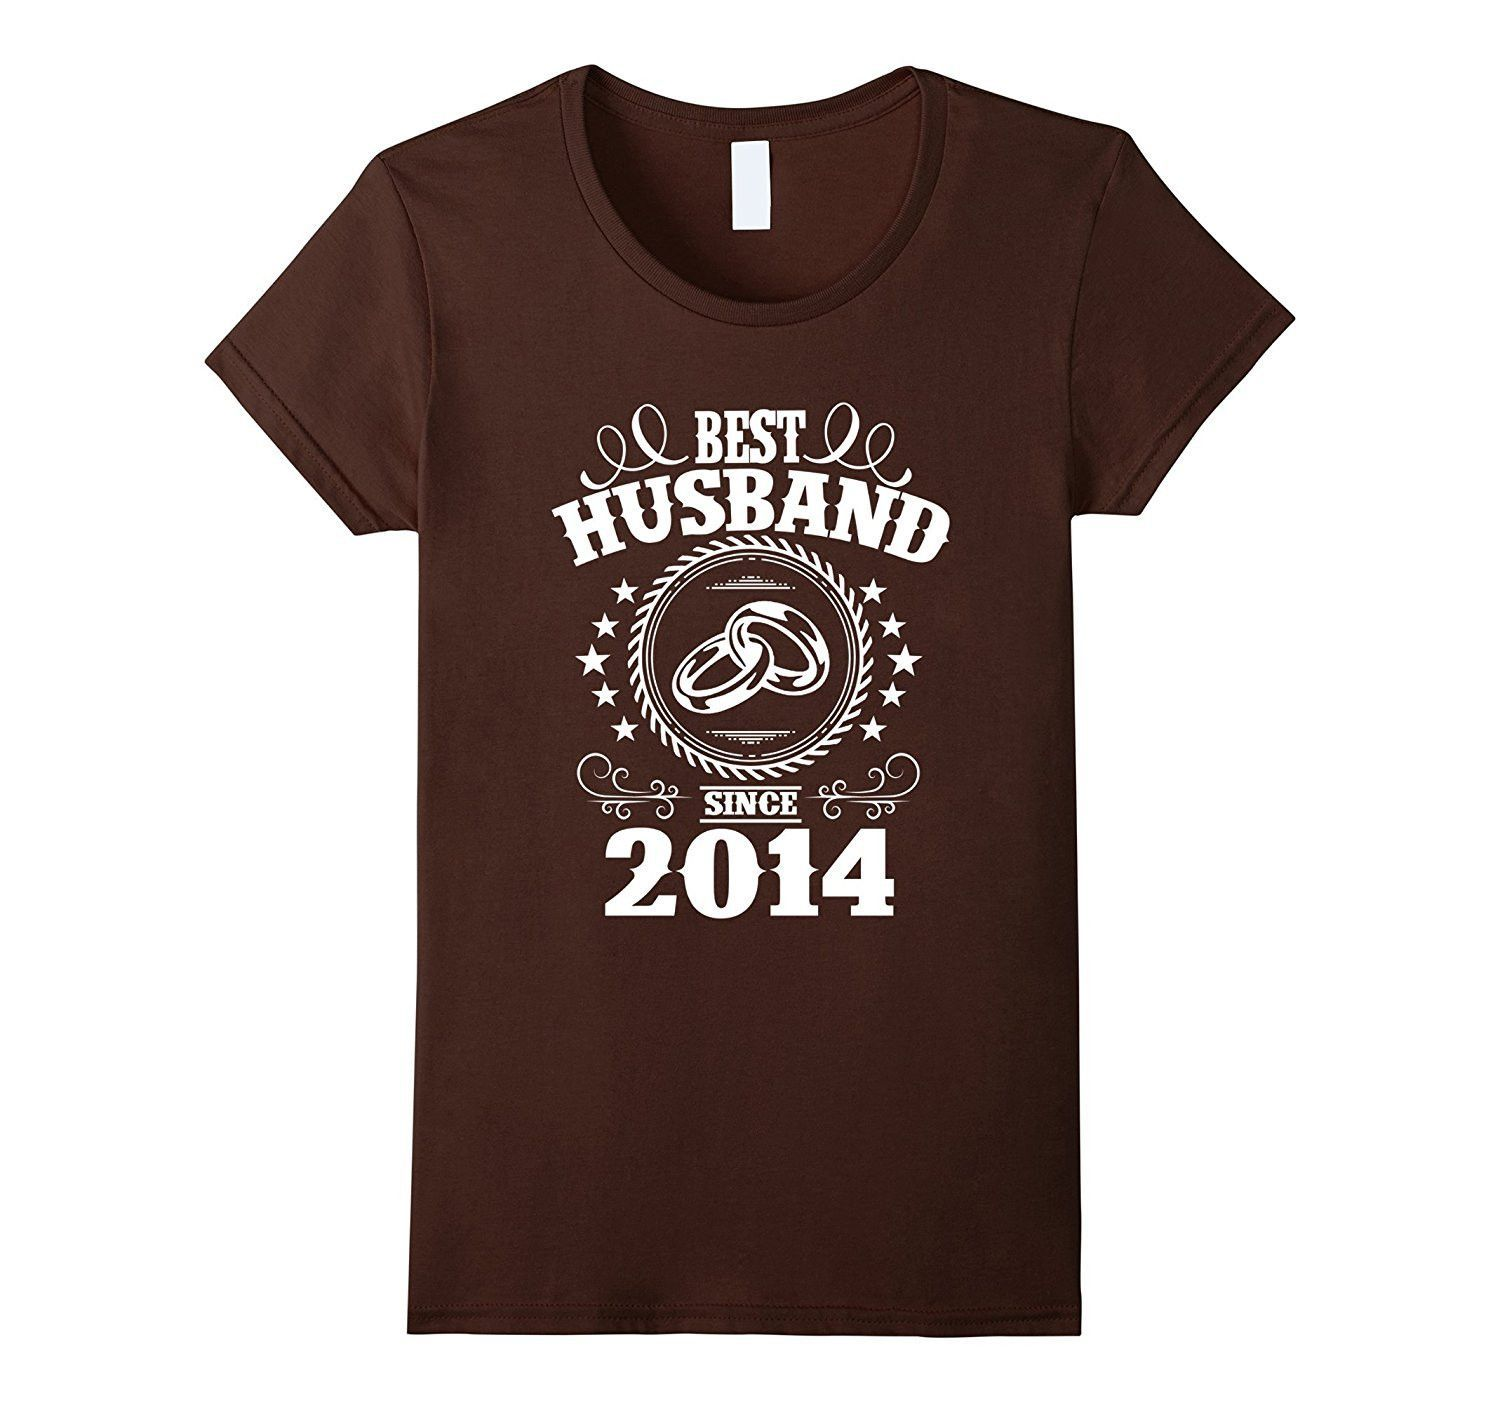 3rd wedding anniversary tshirts for husband from wife